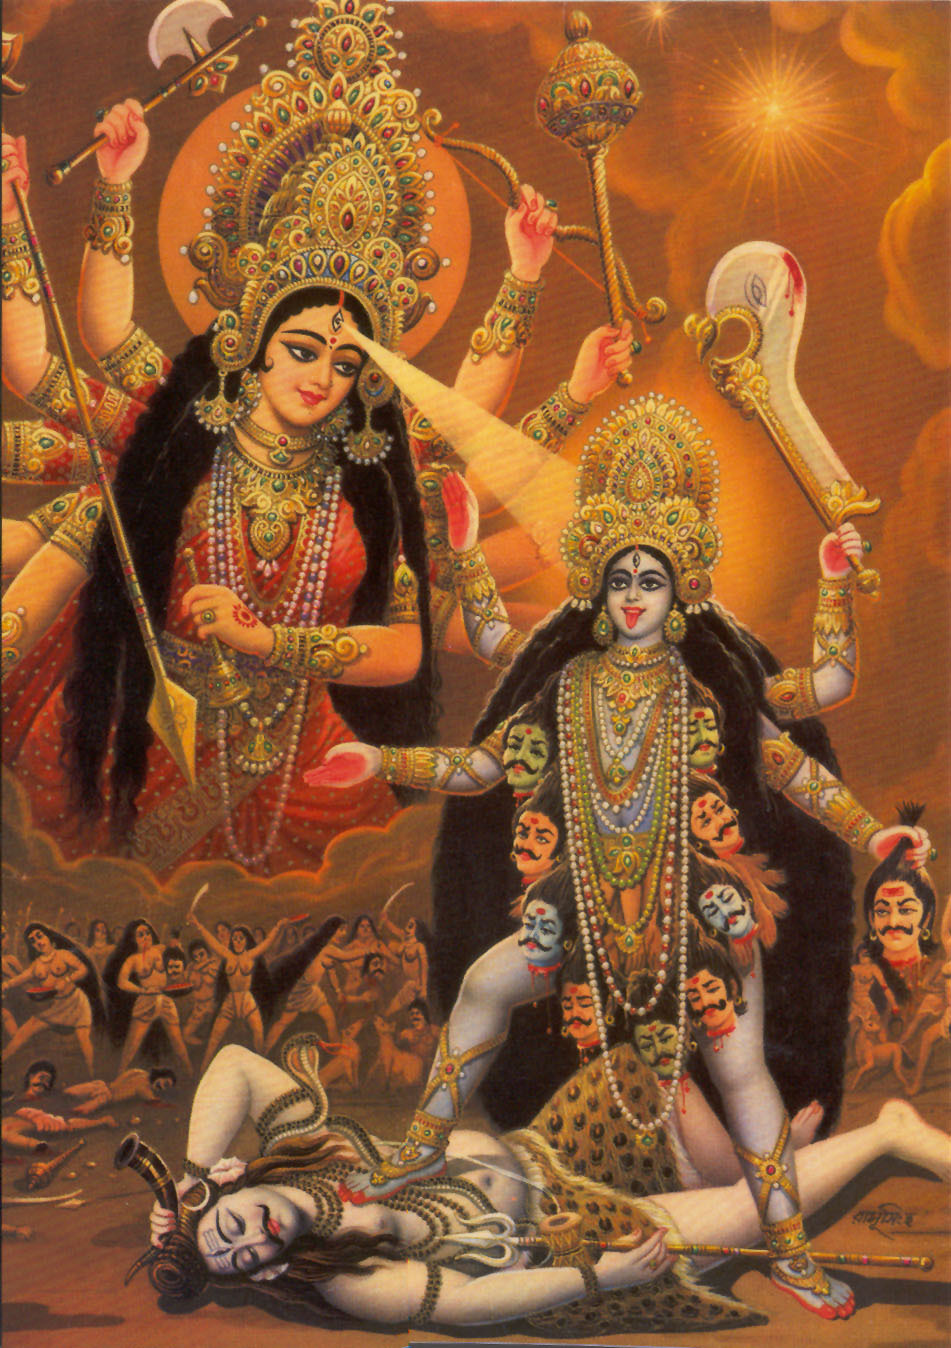 shatkona:  Durga, Kali, and Shiva